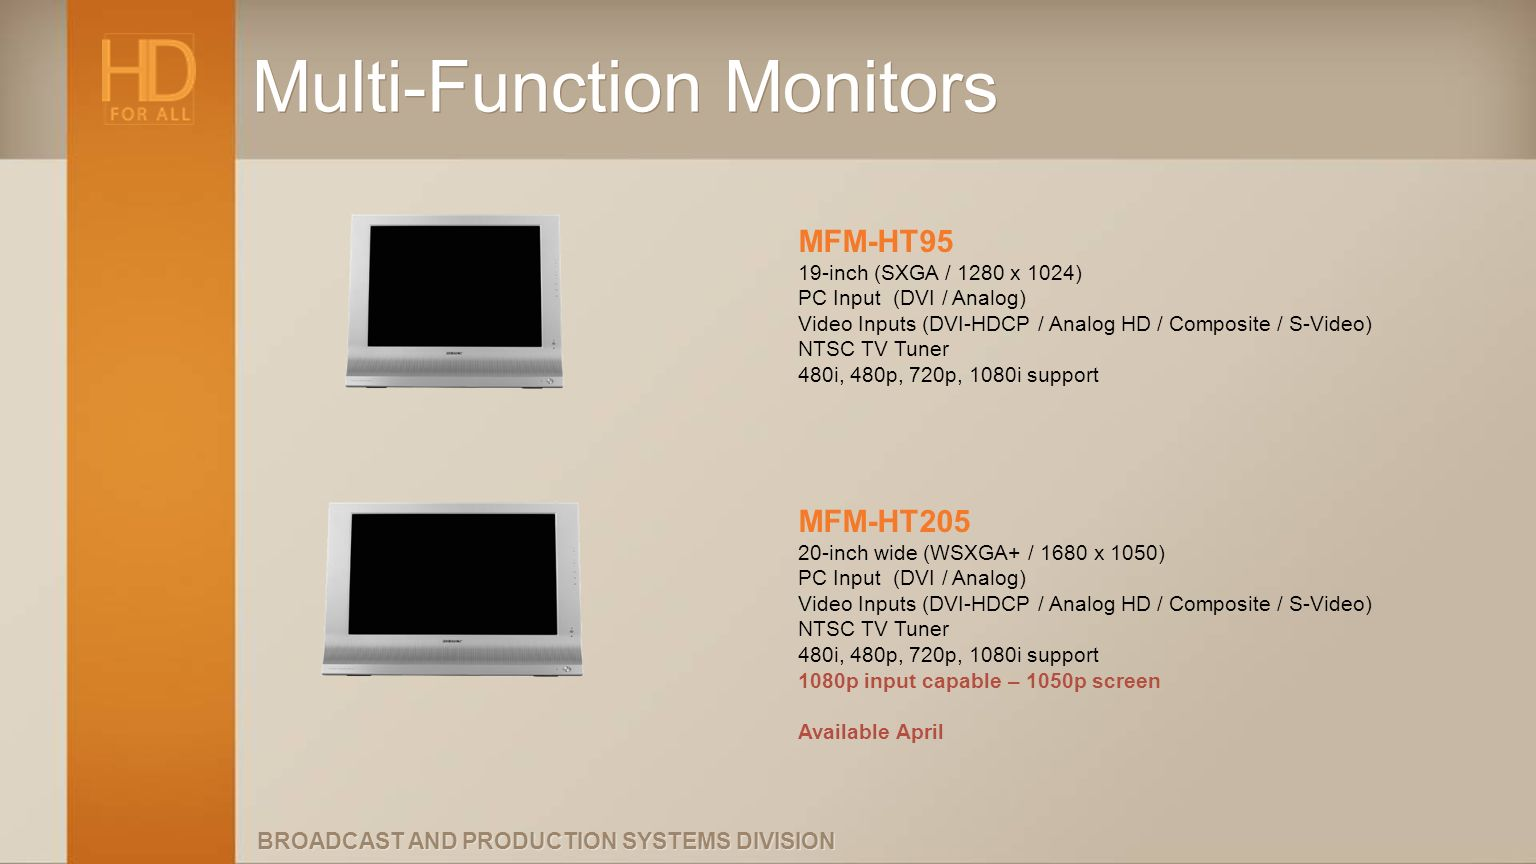 Multi-Function Monitors